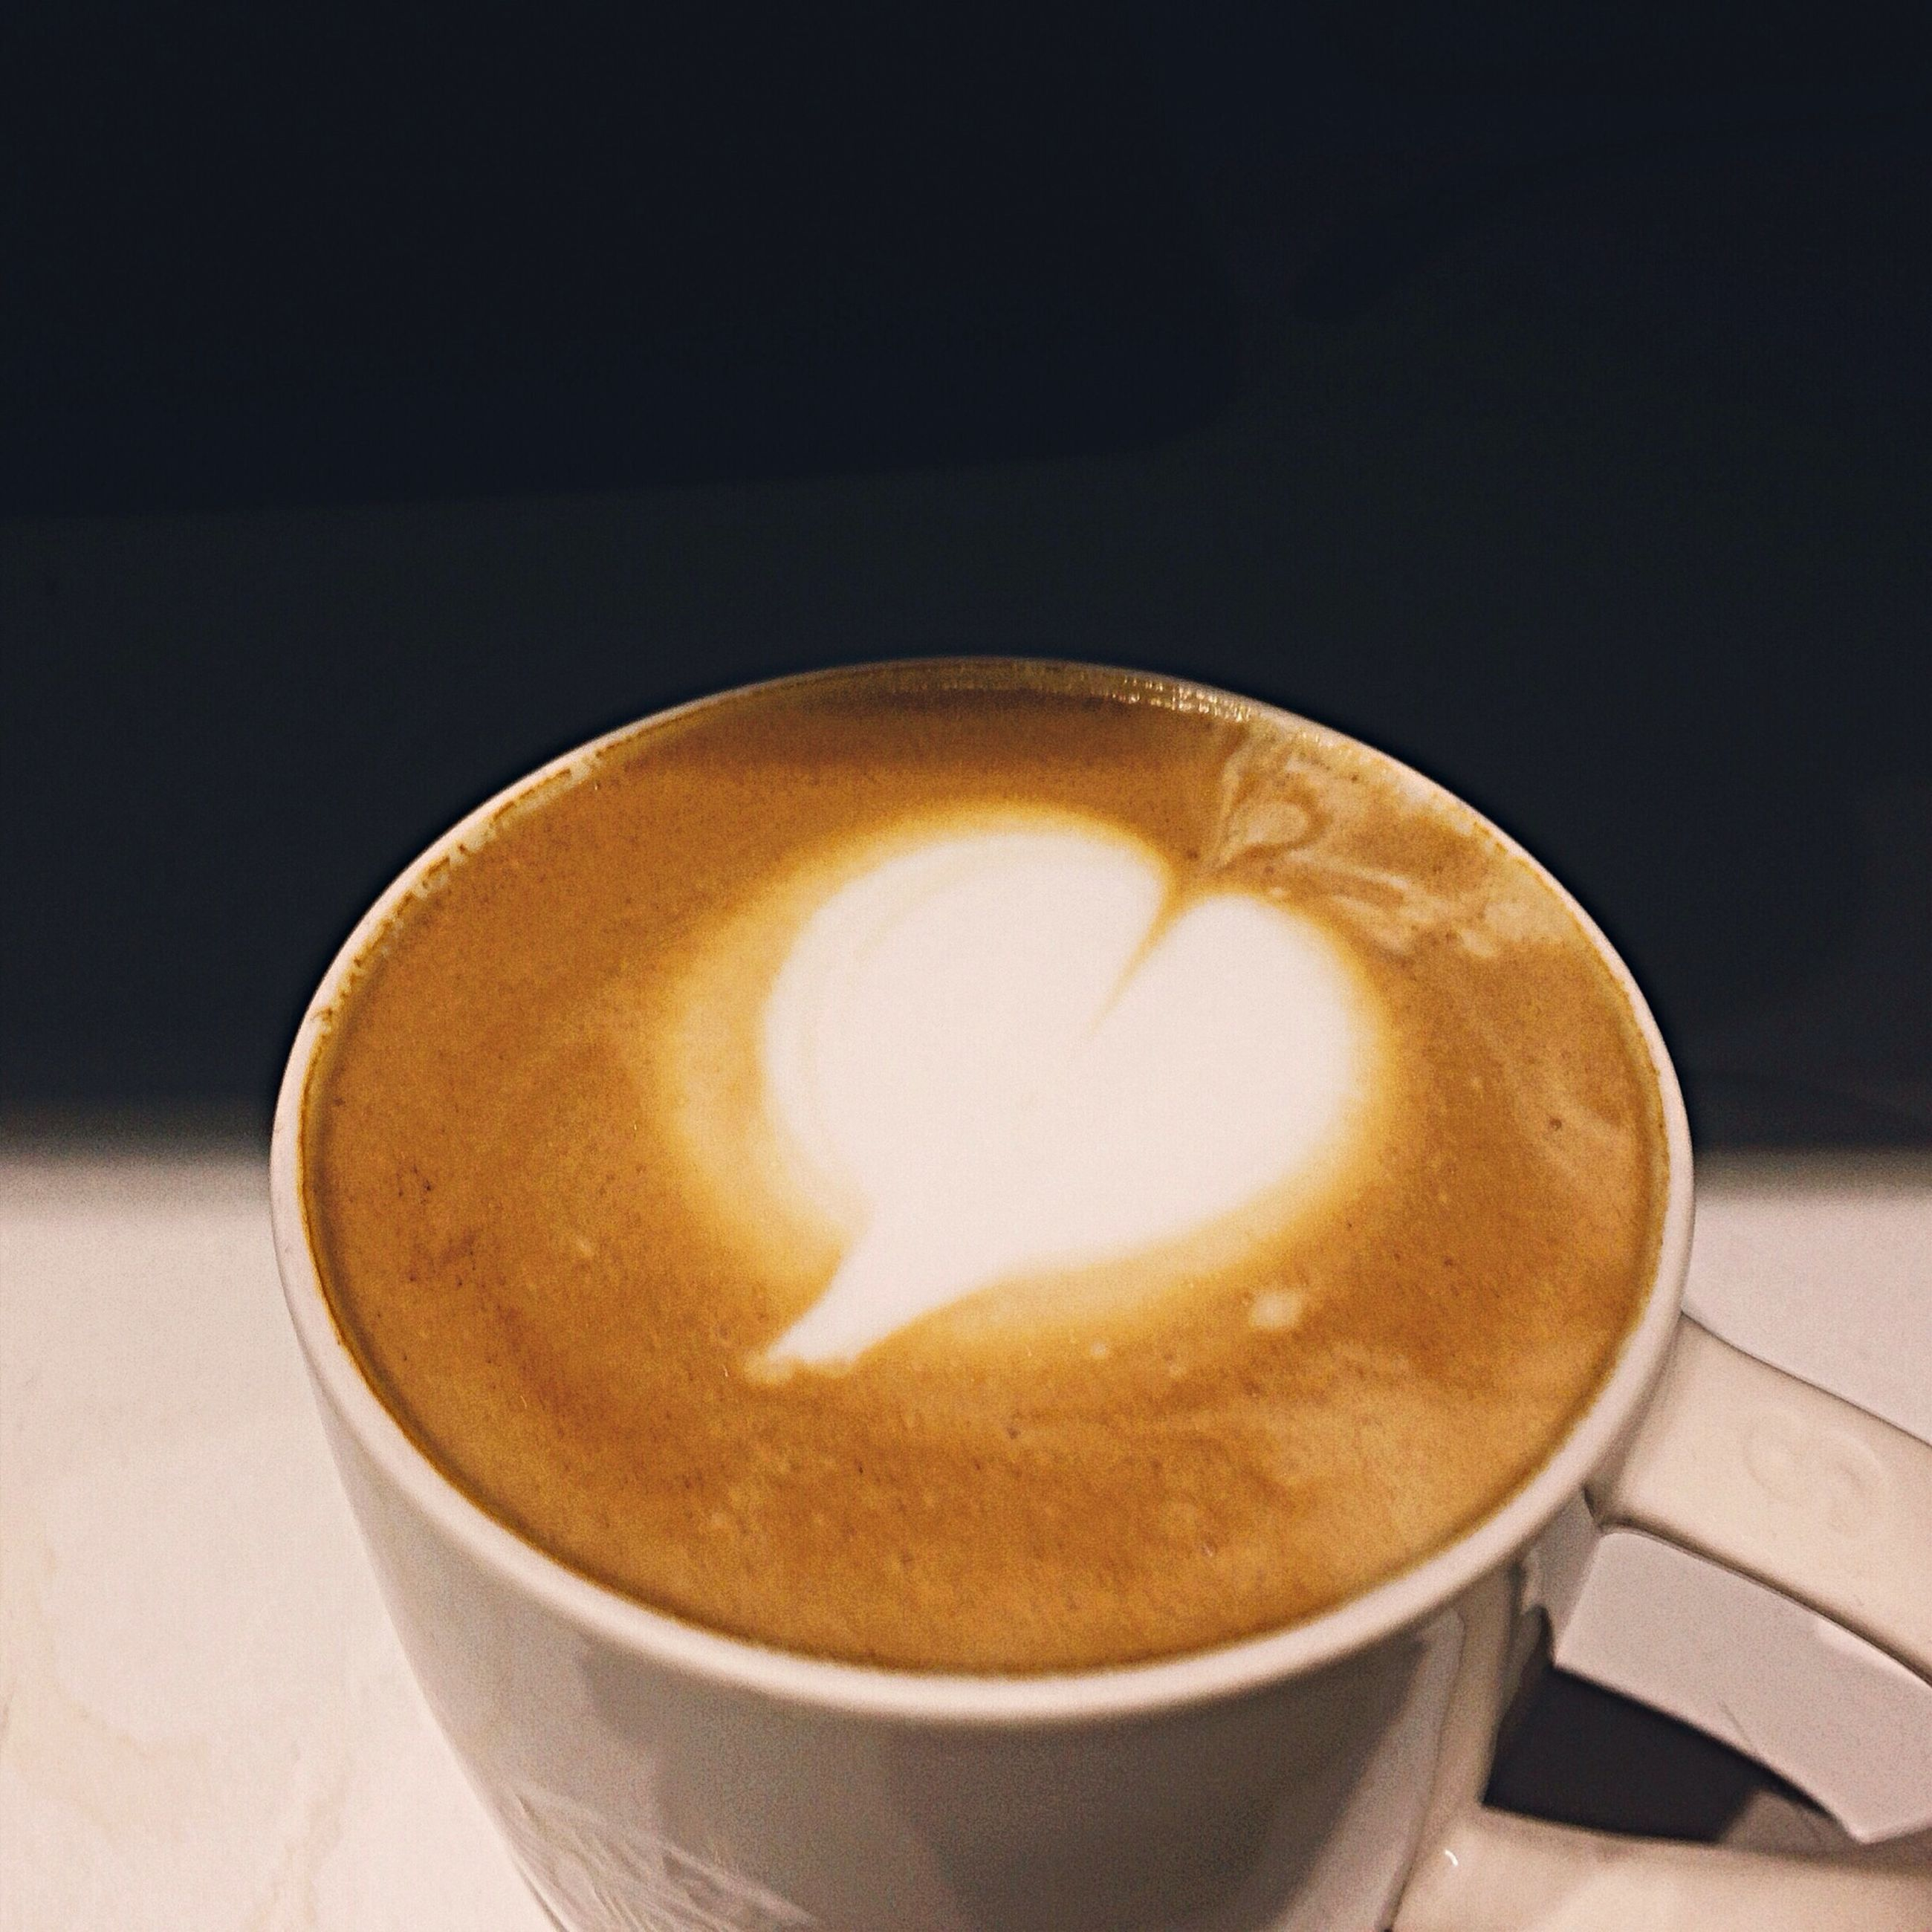 drink, refreshment, food and drink, coffee cup, frothy drink, coffee - drink, cappuccino, saucer, indoors, froth art, coffee, freshness, table, close-up, still life, beverage, cup, latte, froth, no people